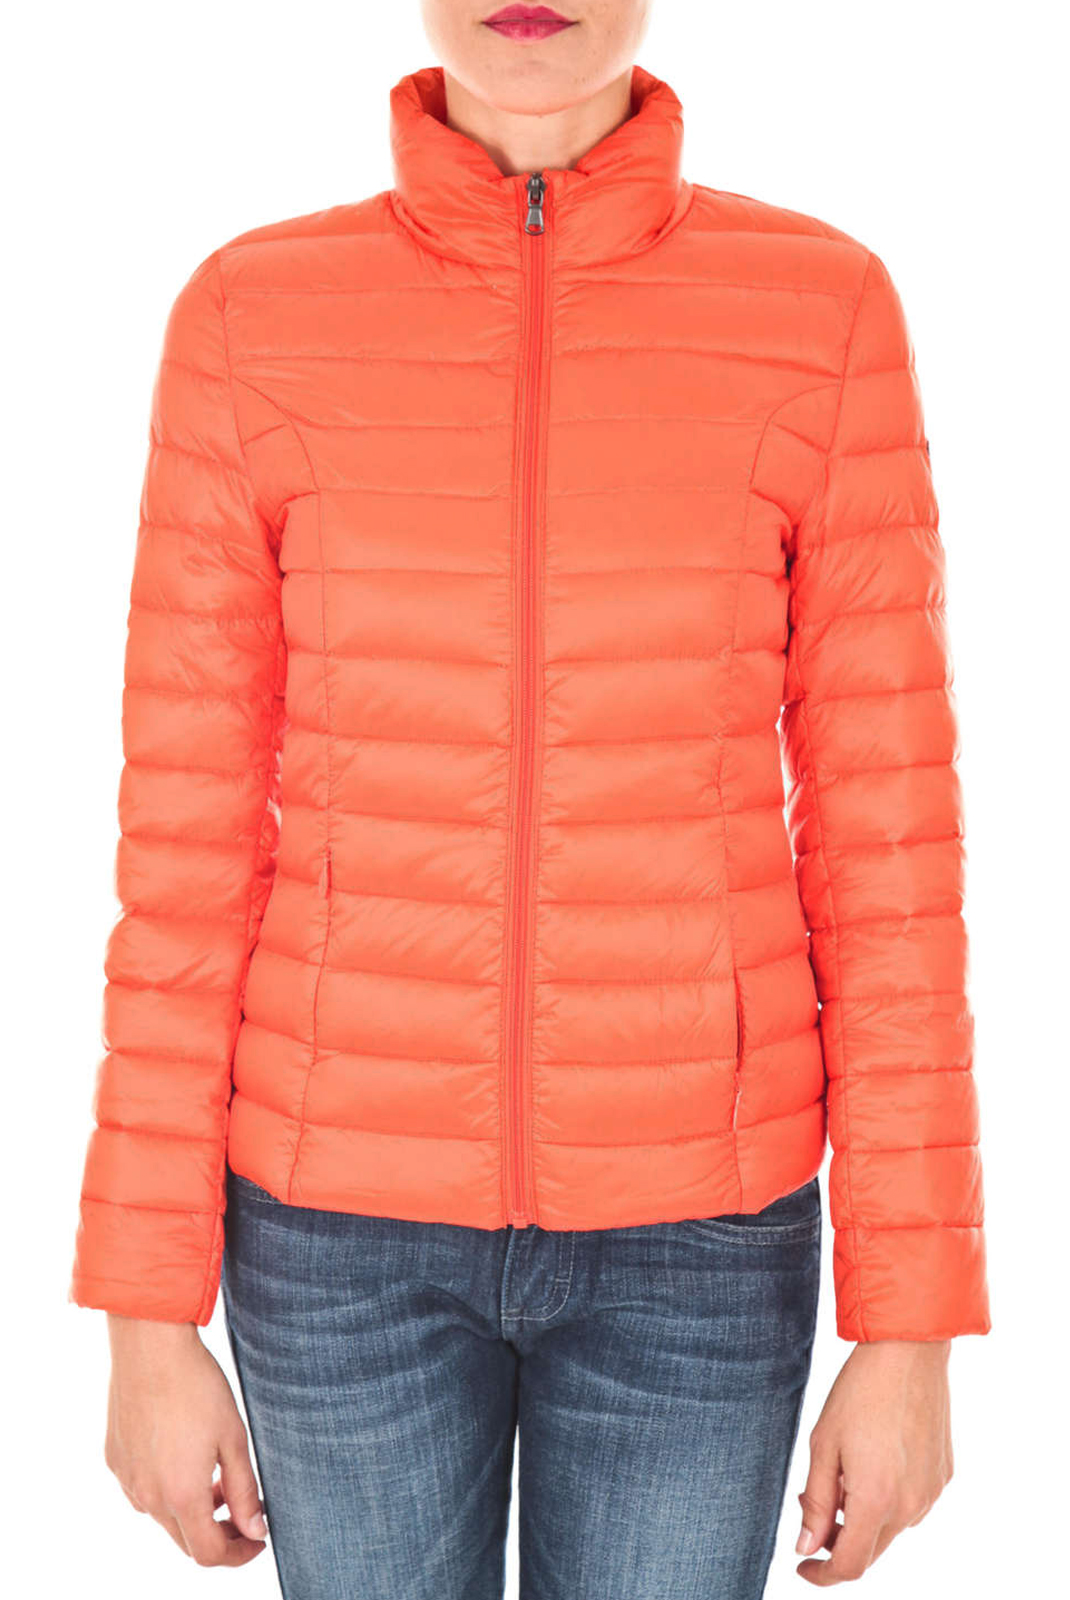 Blouson  Just over the top CHA 700 ORANGE